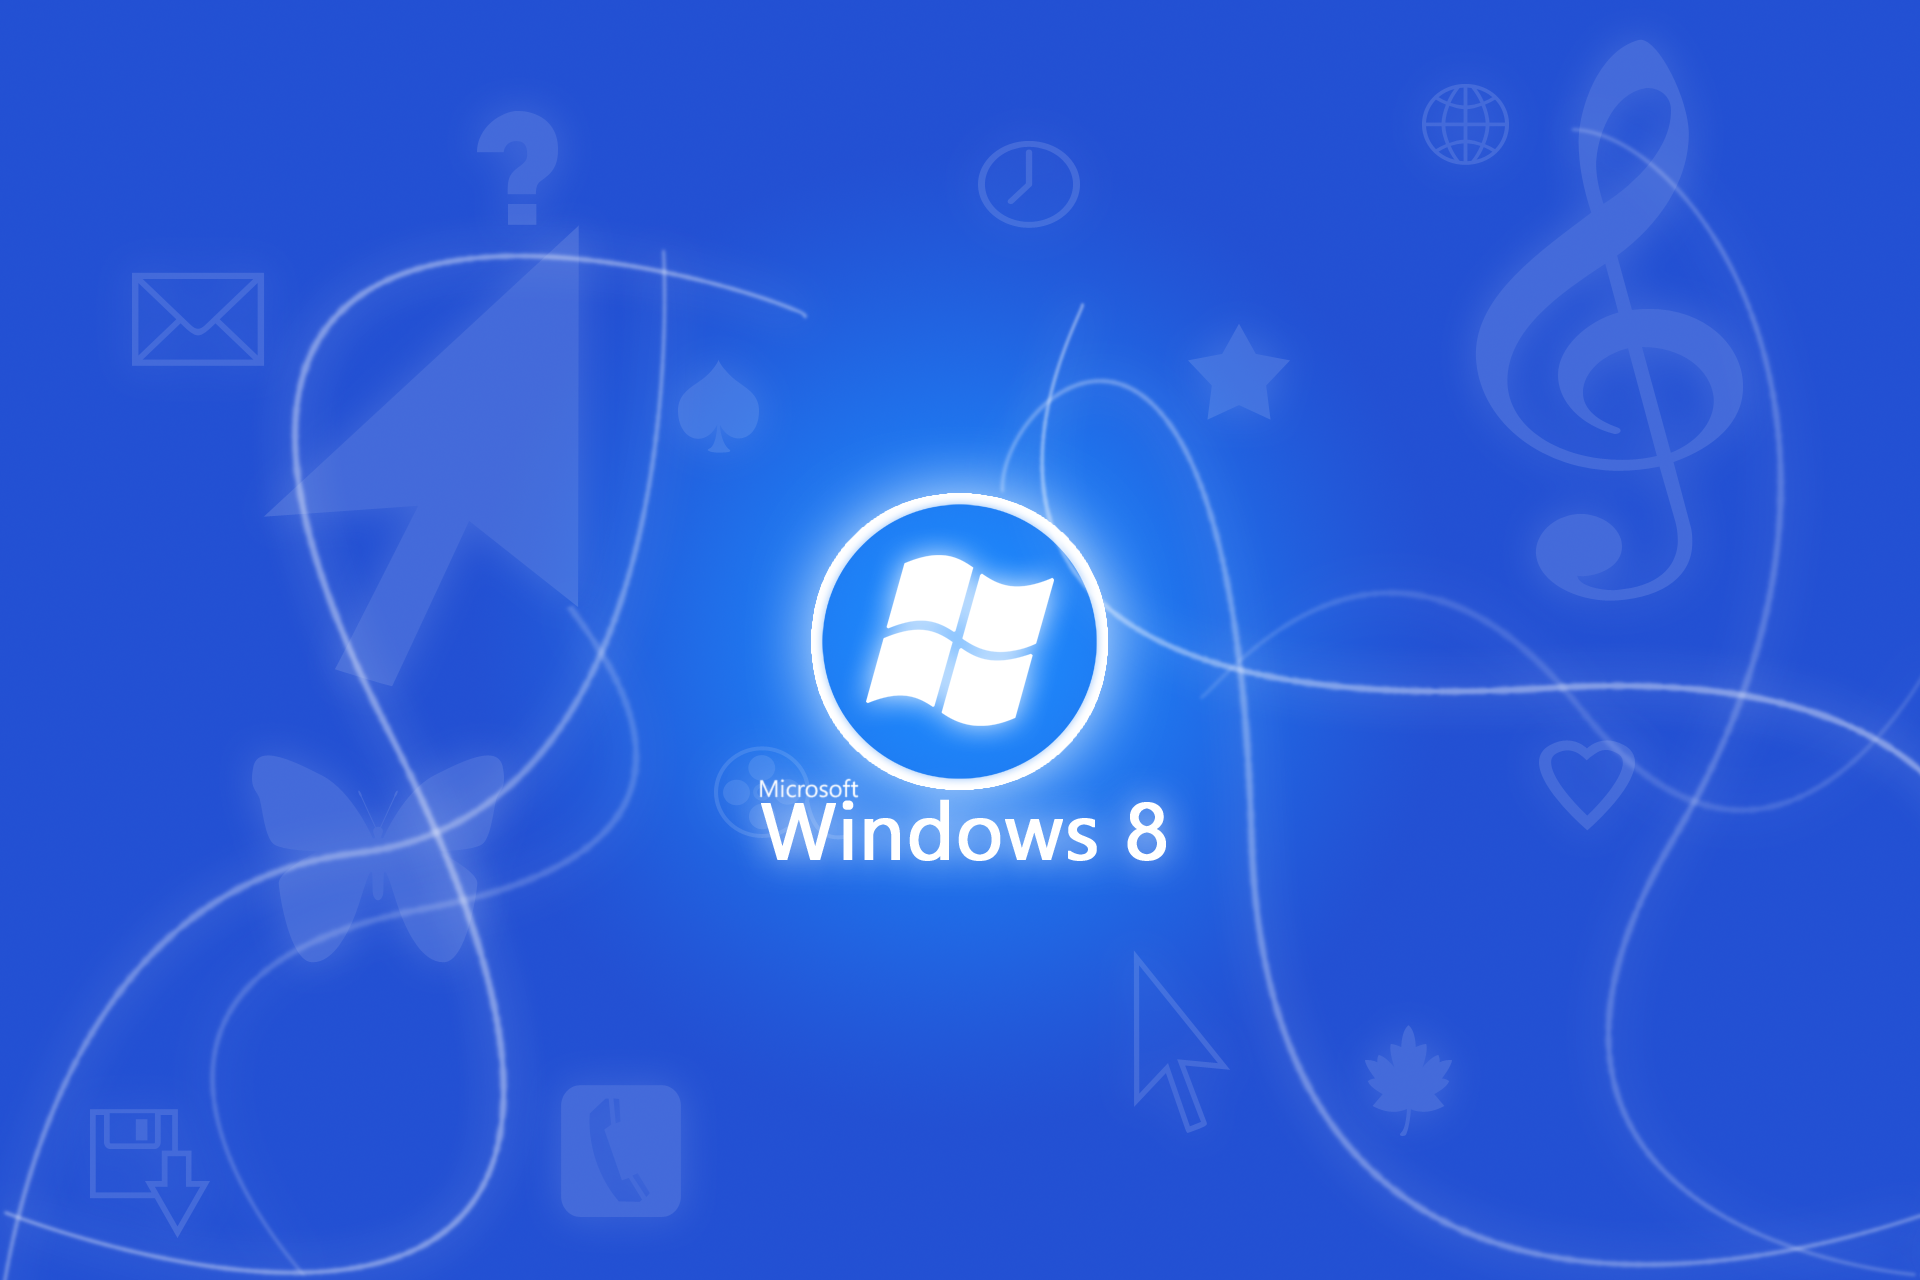 Download these 44 HD Windows 8 Wallpaper Images 1920x1280